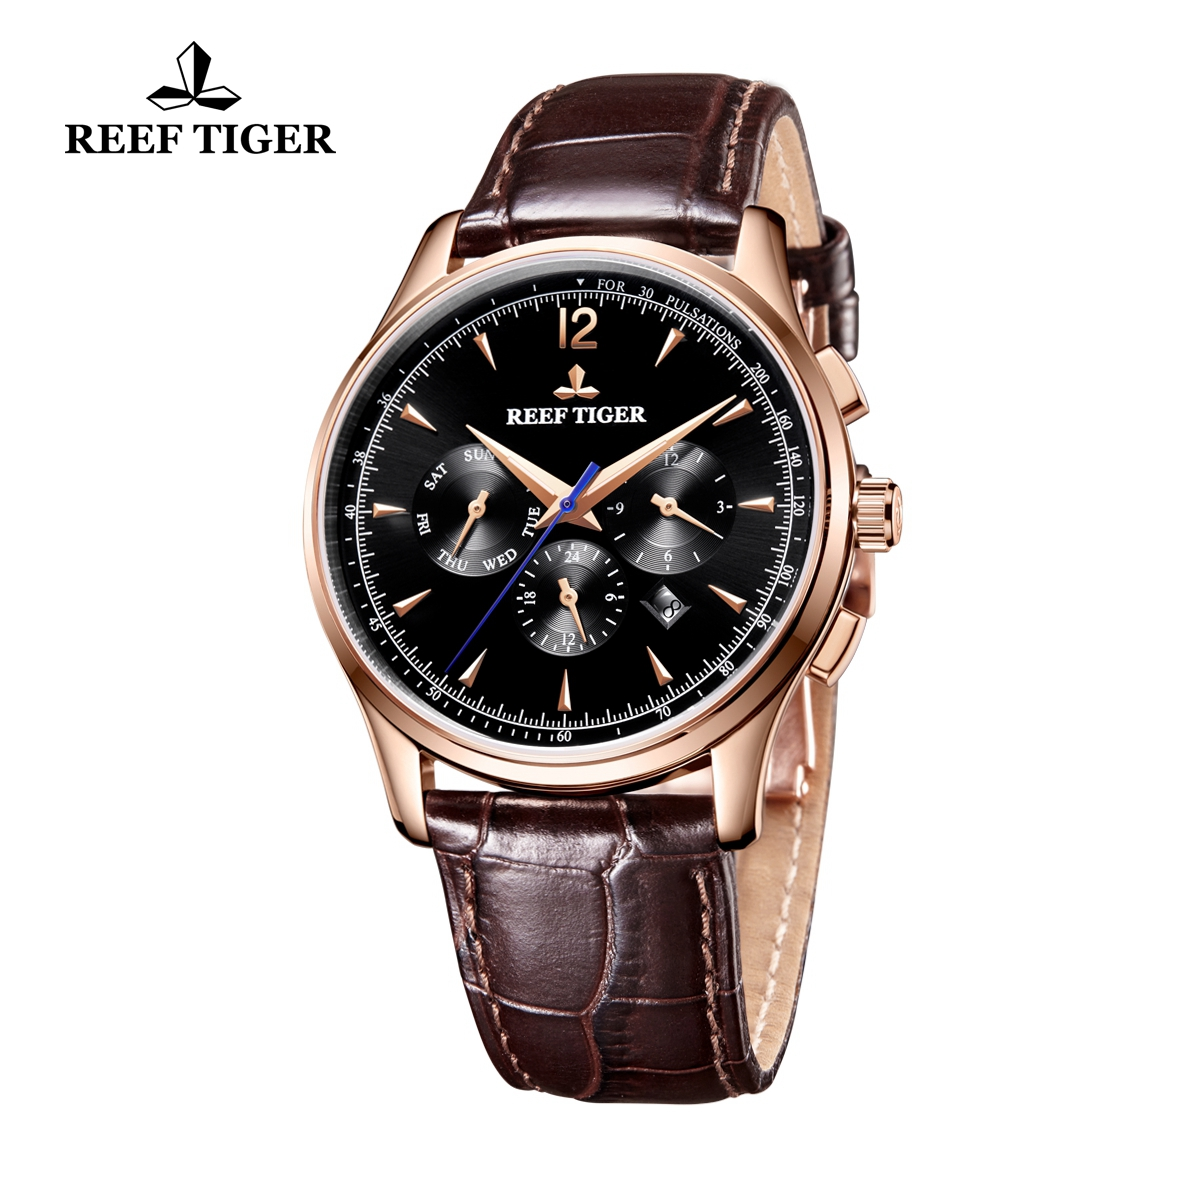 Reef Tiger Seattle Museum Dress Automatic Watch Rose Gold Black Dial Black Leather Strap RGA1564-PBB